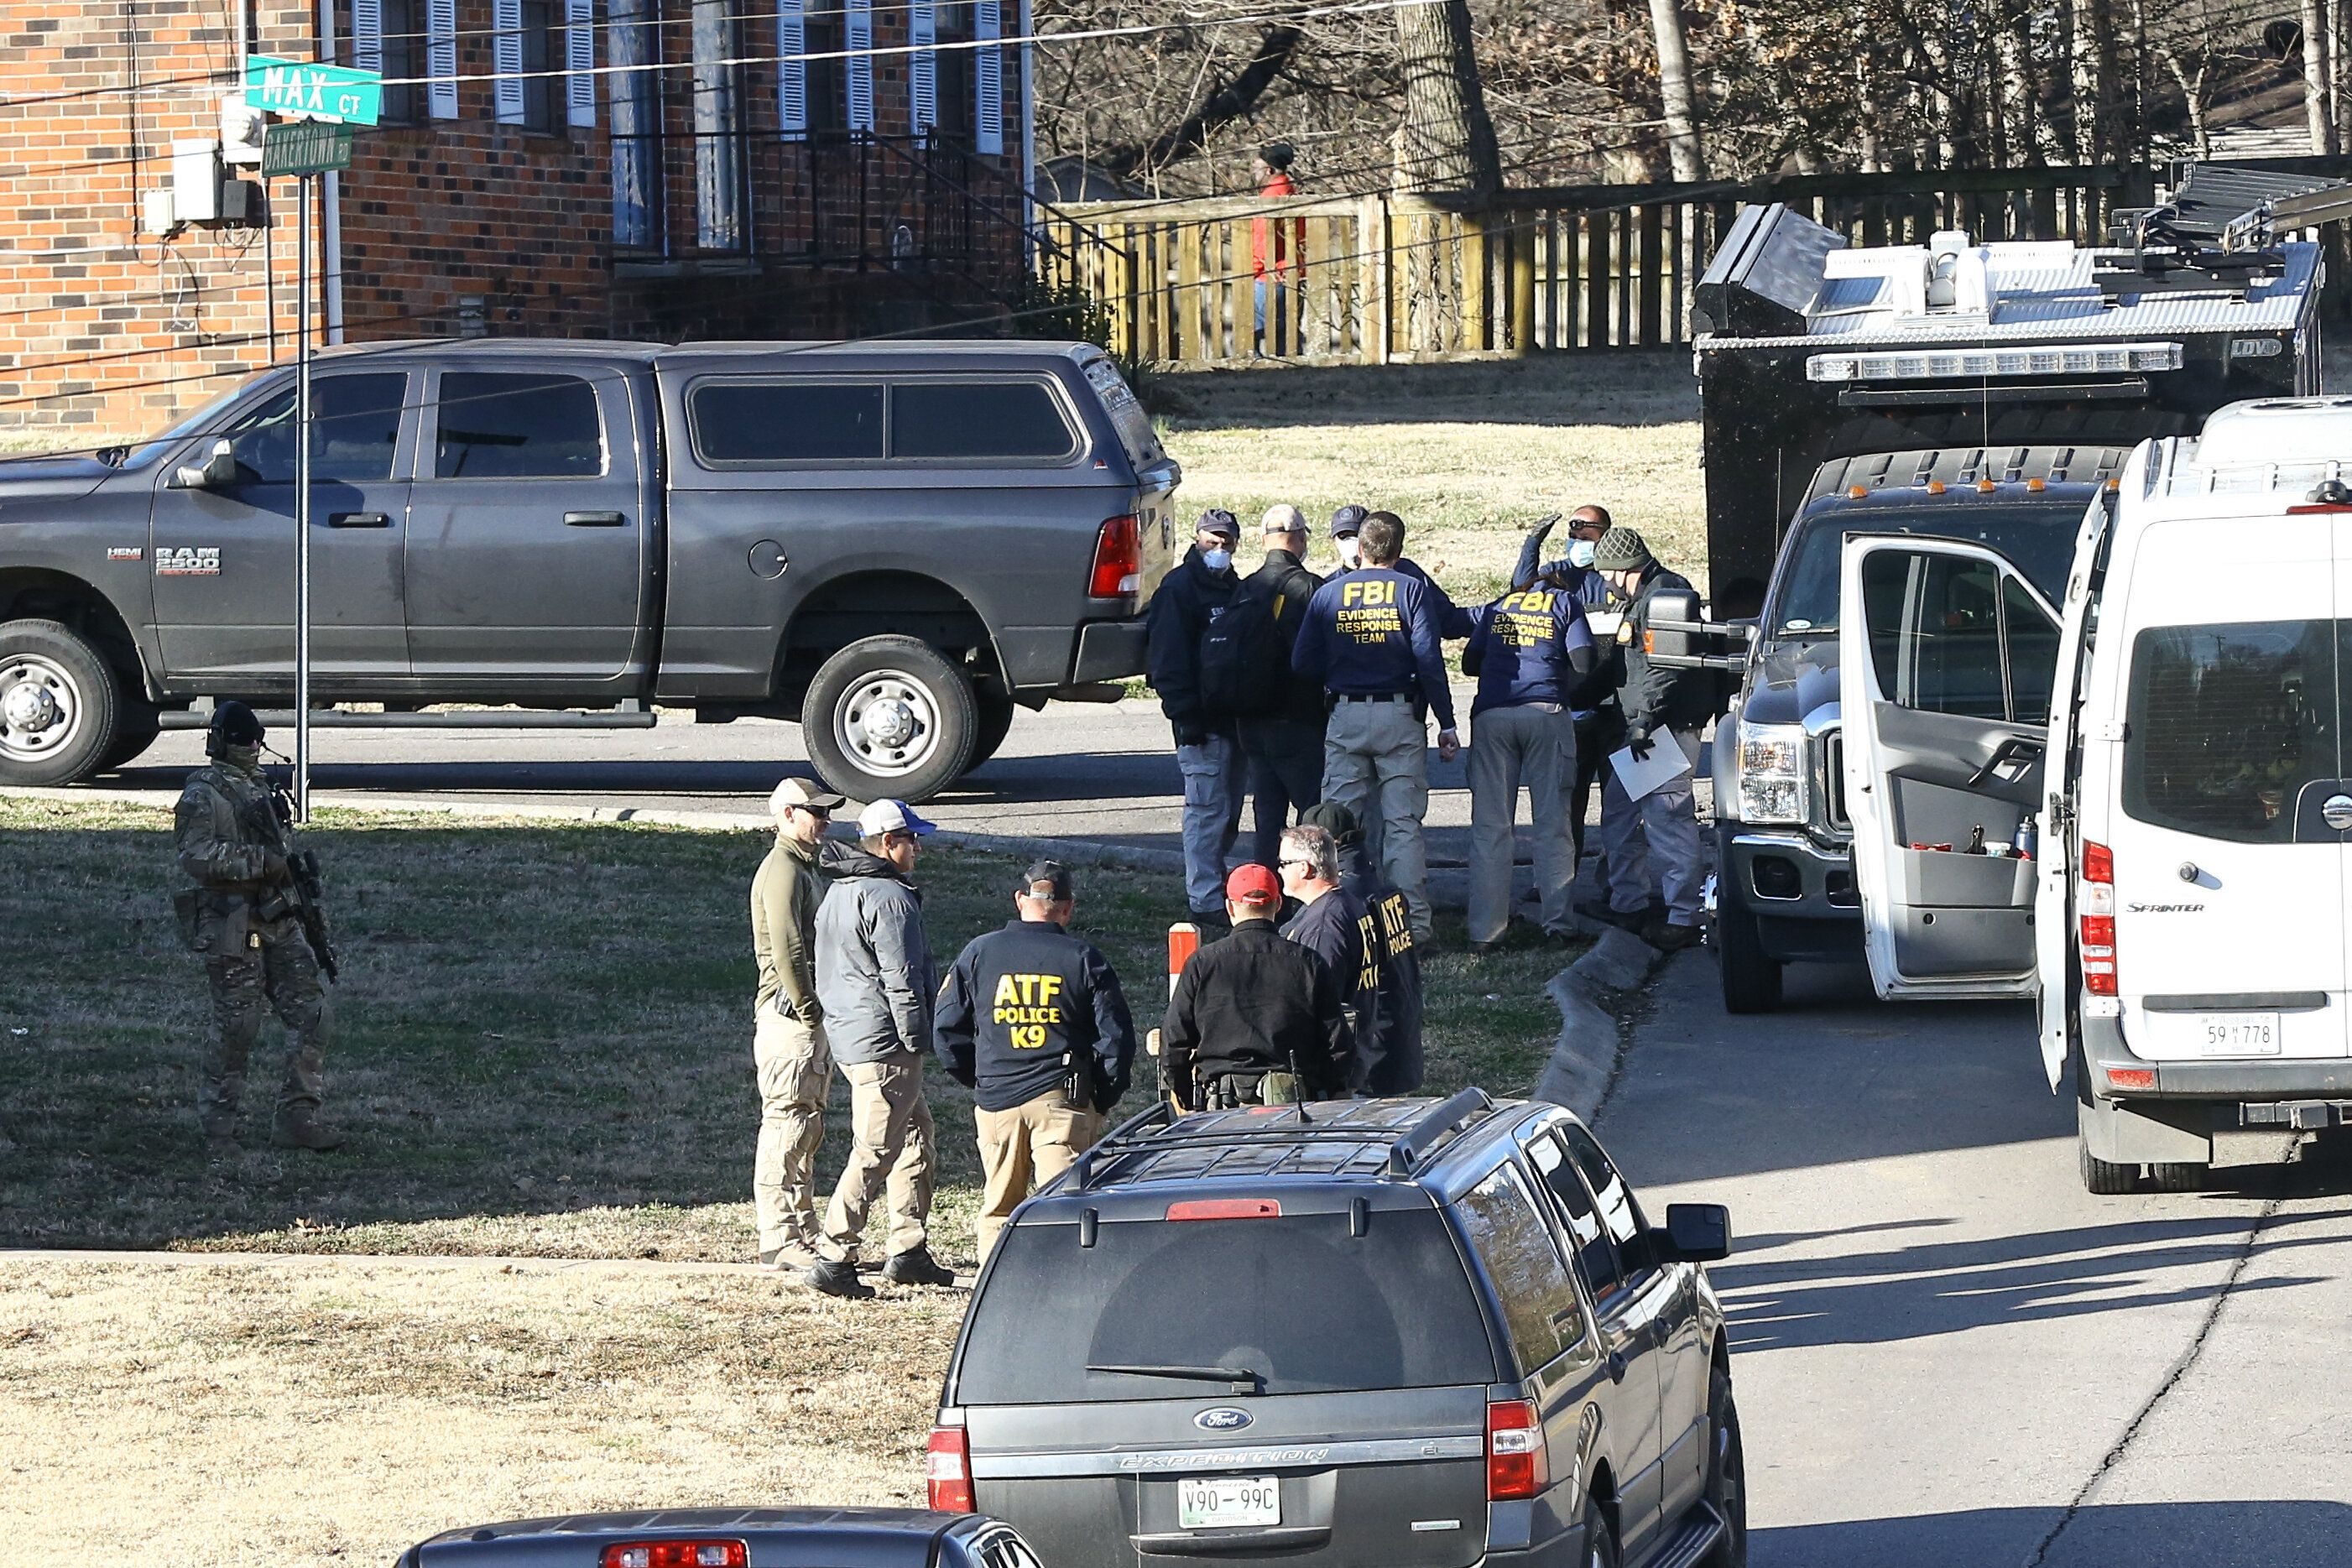 Law enforcement officers investigate the house belonging to Anthony Quinn Warner, a 63 year-old man who has been reported to